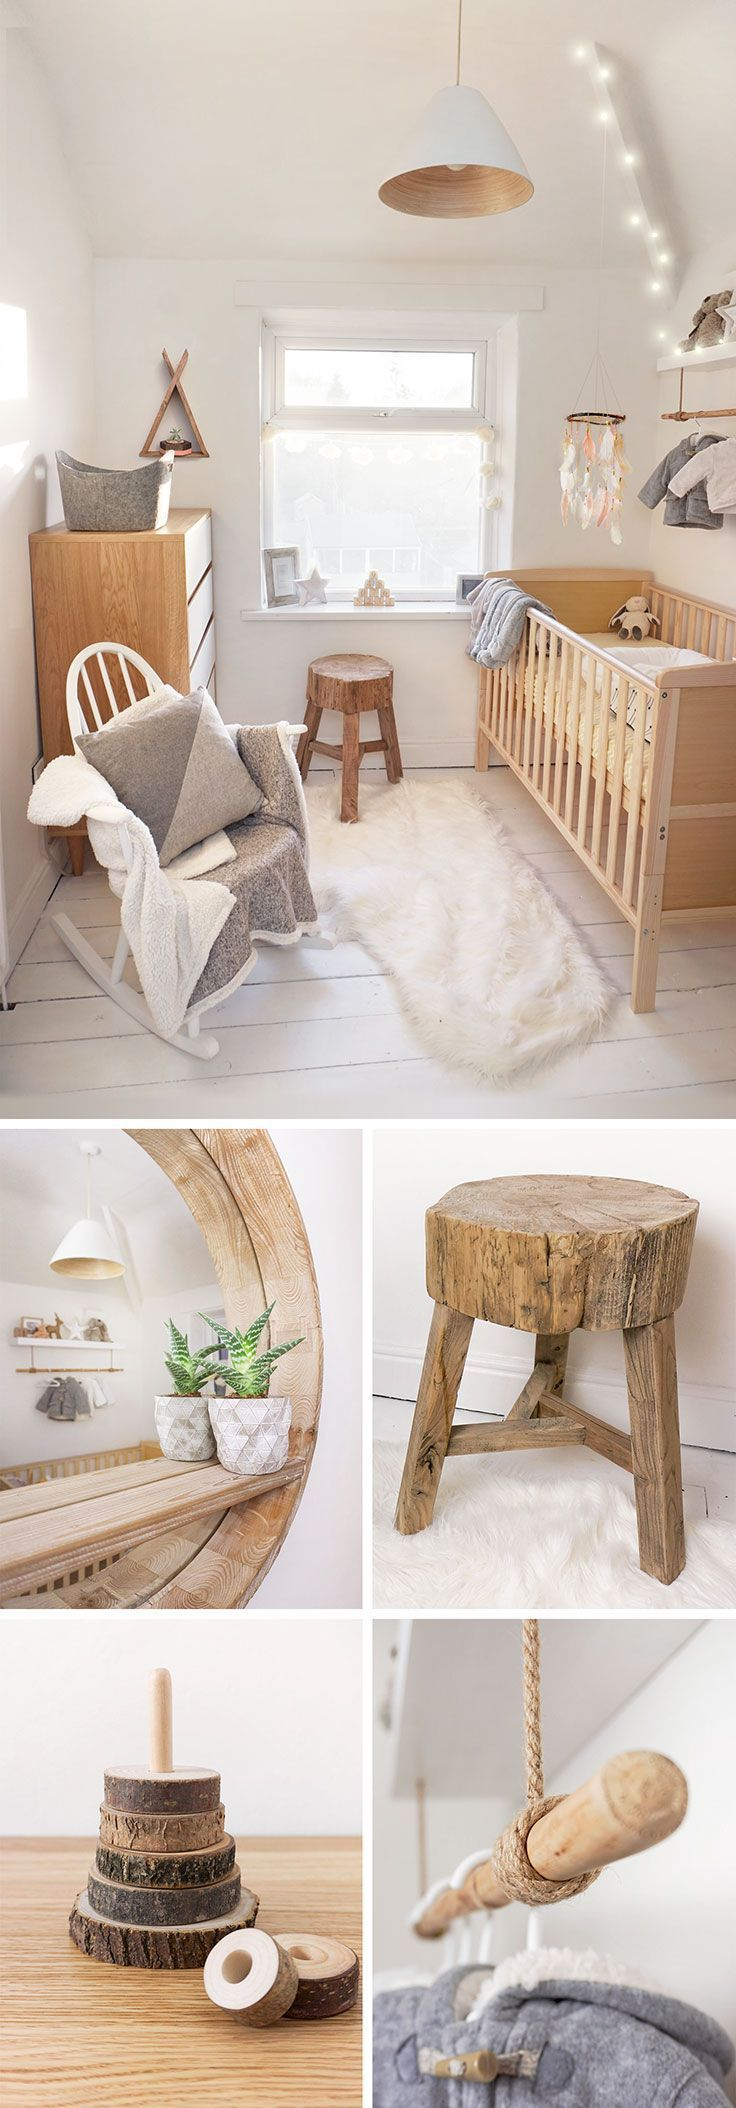 Scandi, nordic, woodland, ethnic, Native American nursery. Featuring rocking chair, rustic wooden stool, circular wooden mirror, fur rug and scandinavian style furniture. This babies room is completed with wooden cot and clothes rail. #FurRugs